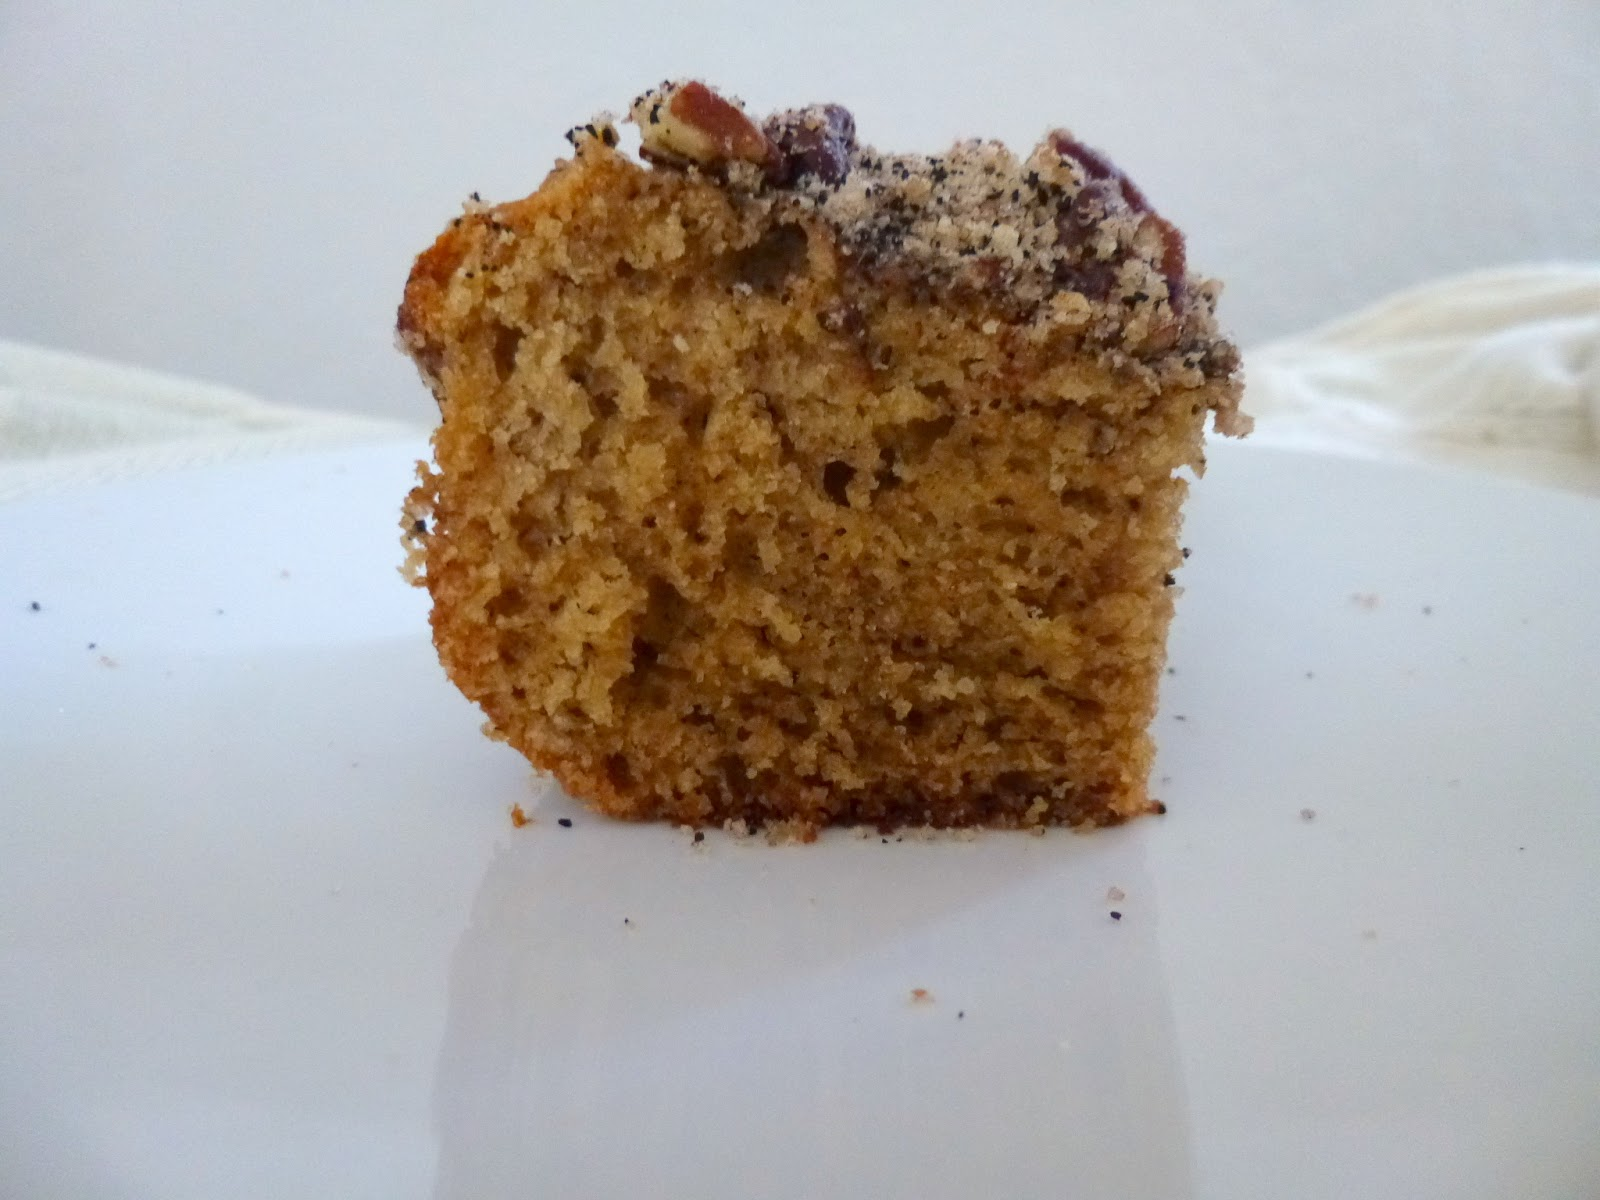 moist, espresso-flavored coffee cake with a pecan chocolate streusel